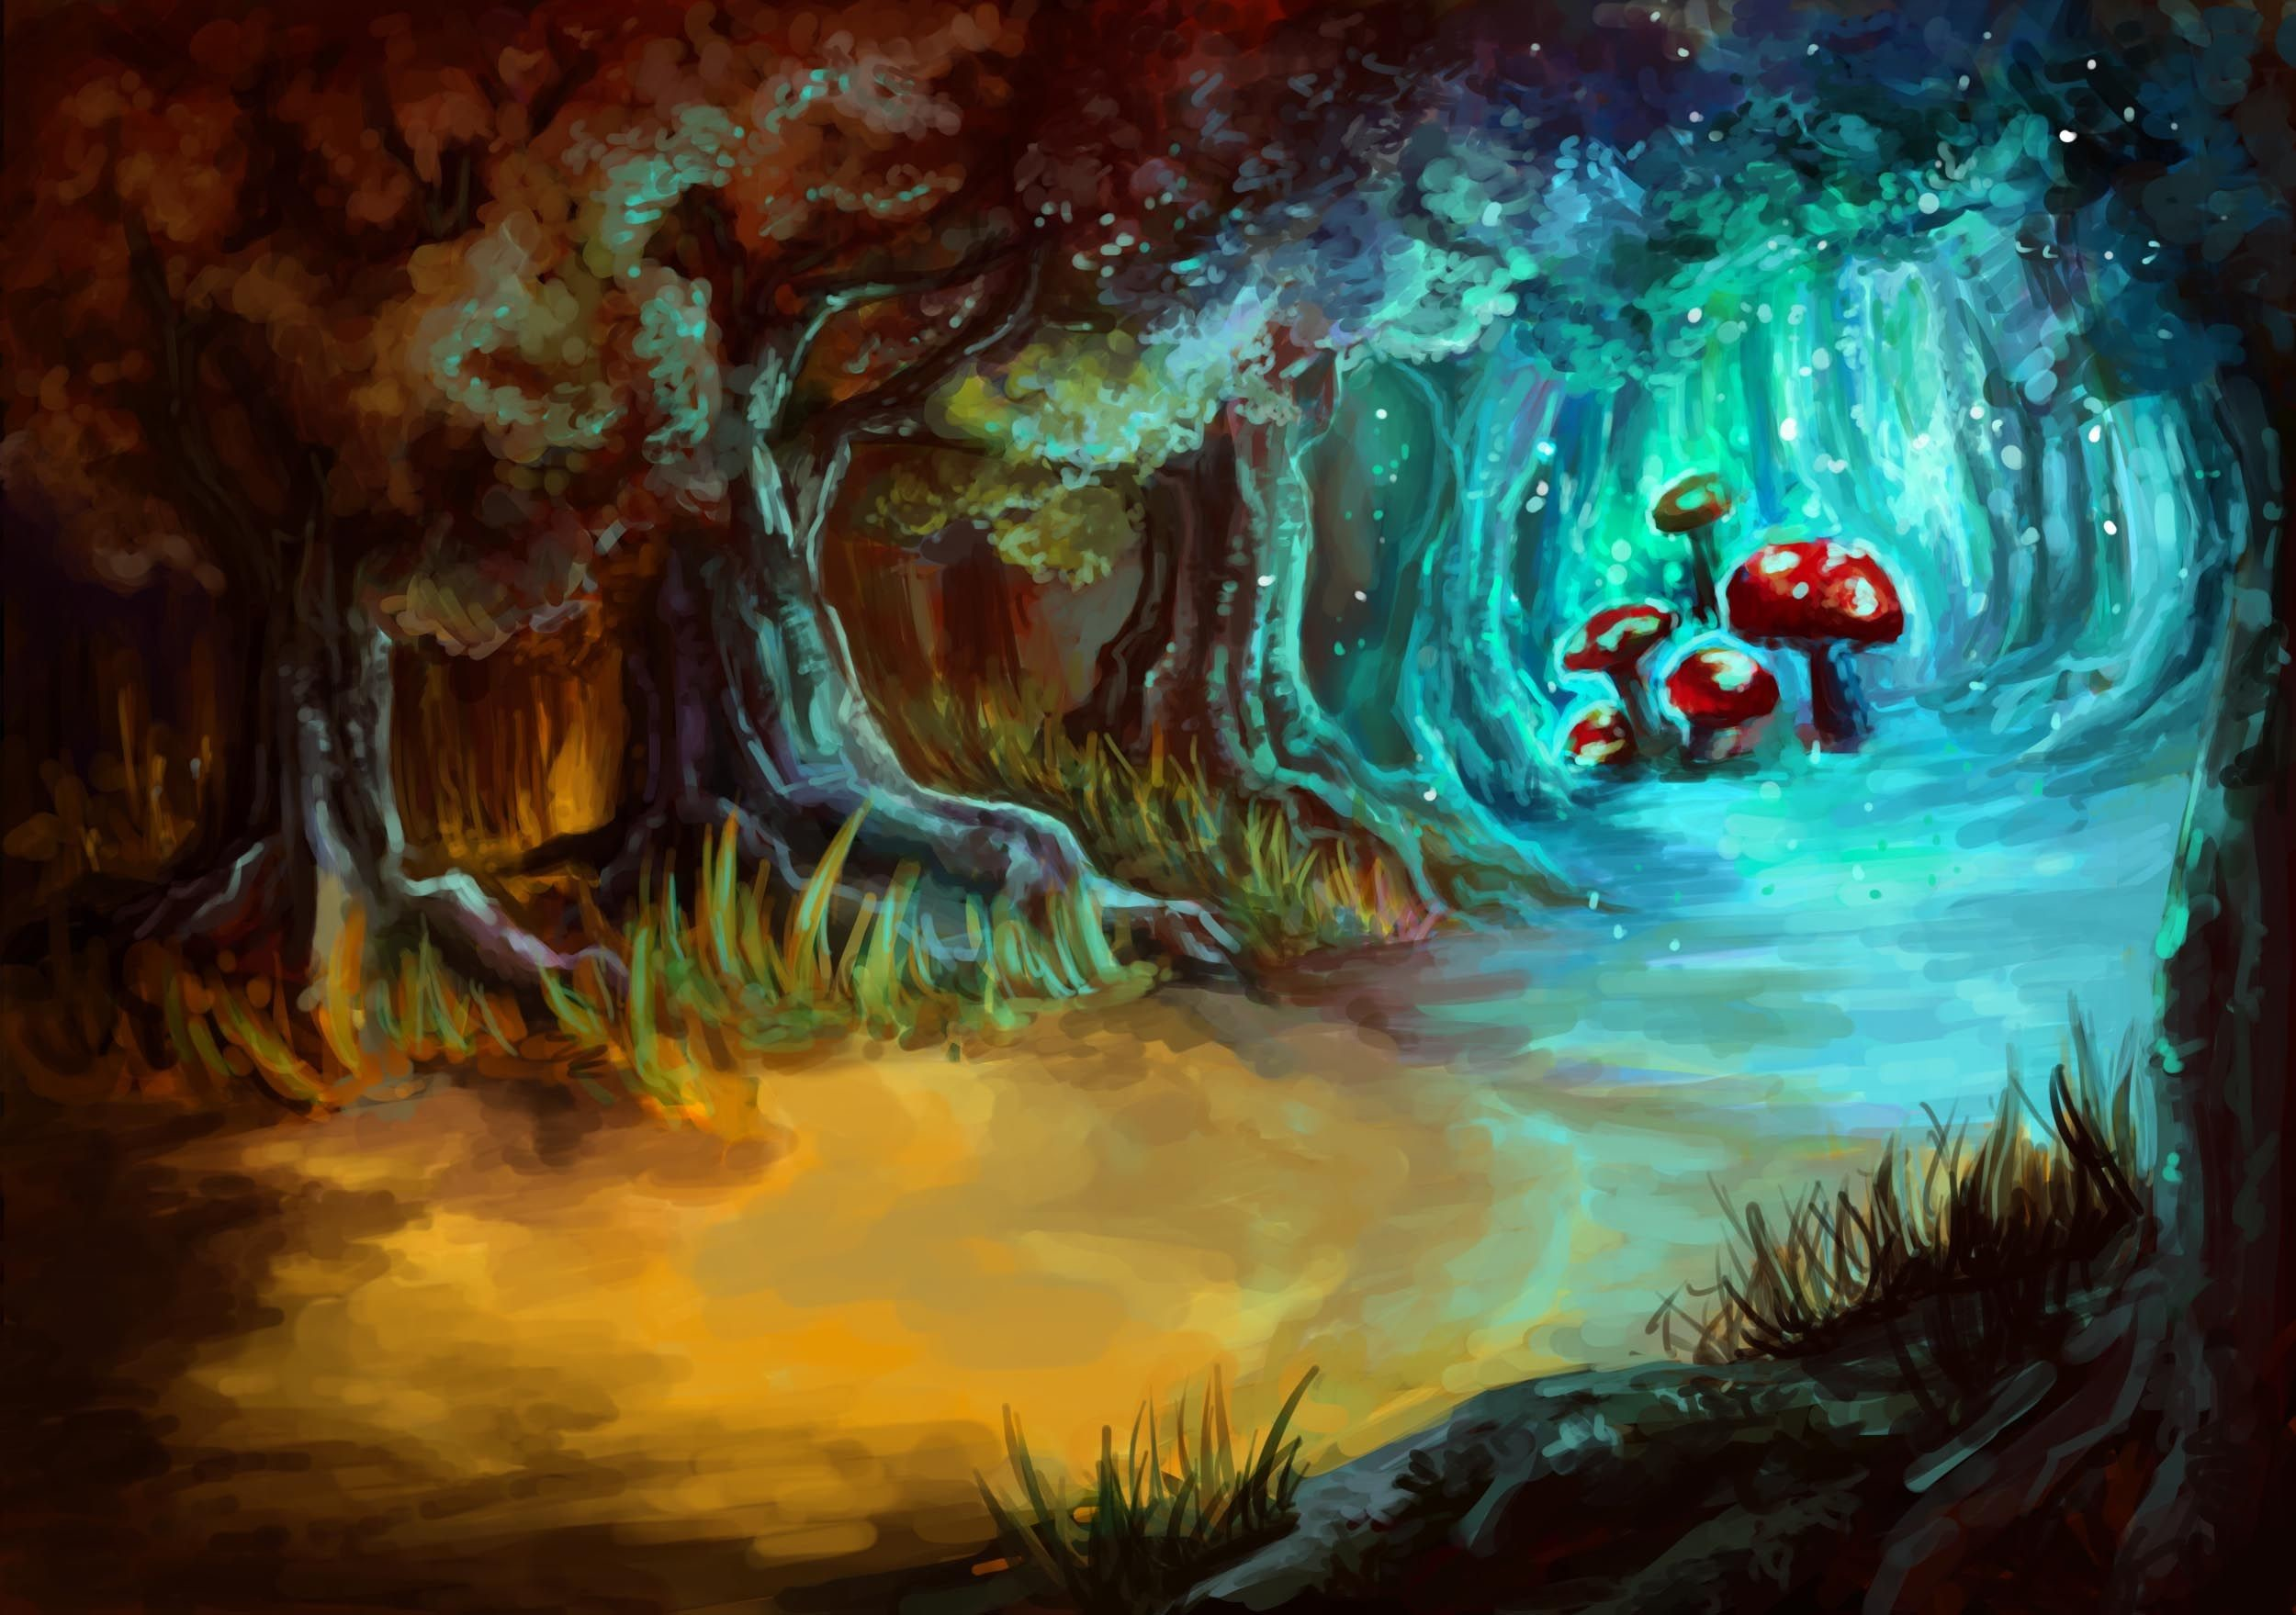 Res: 2500x1759, DeviantArt: More Like magic mushrooms-completed by tsepei